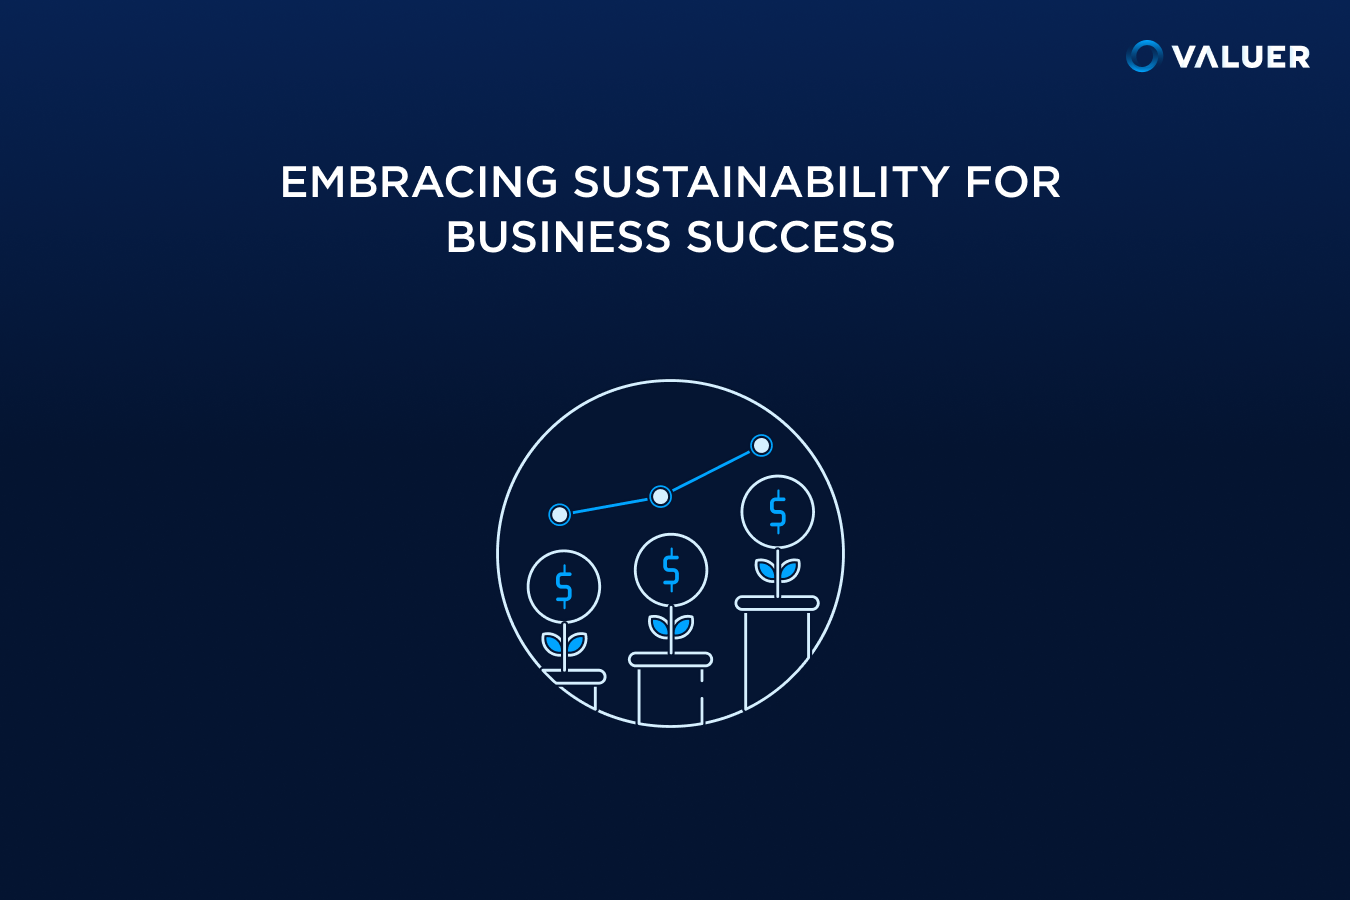 Embracing Sustainability for Business Success